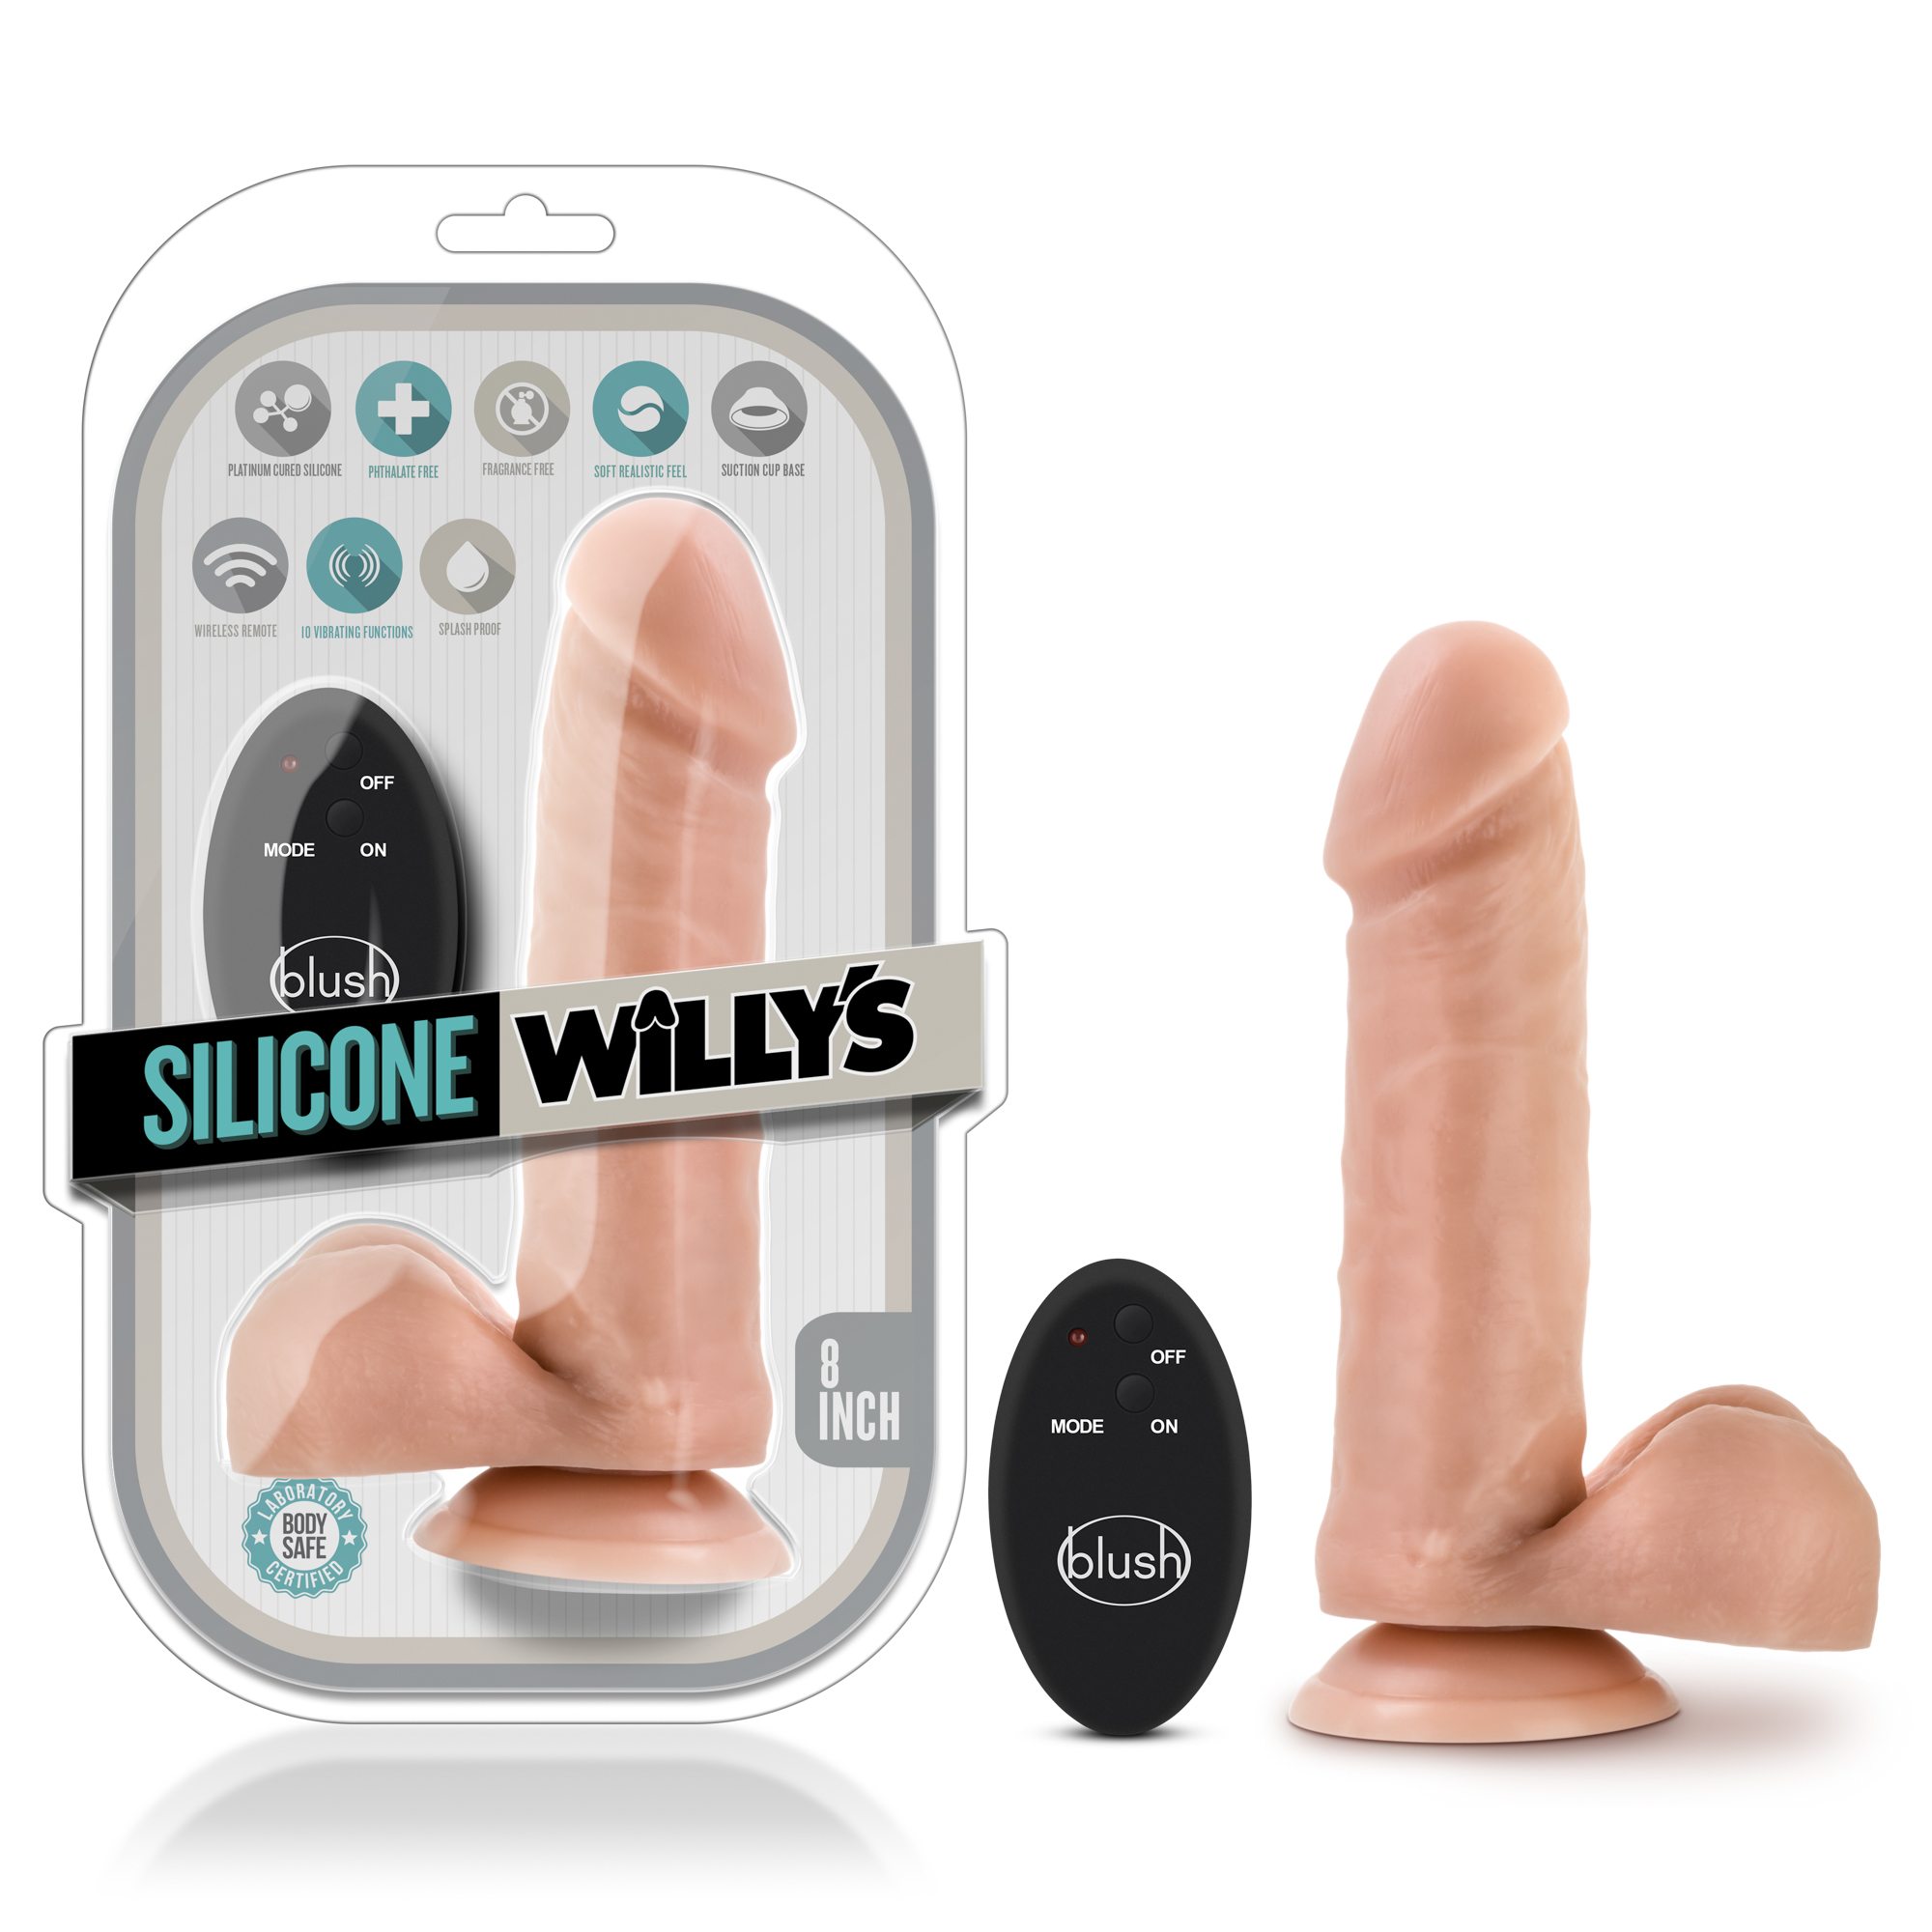 Silicone Willy's - 8 Inch 10 Function Wireless Remote Silicone Dildo - Vanilla